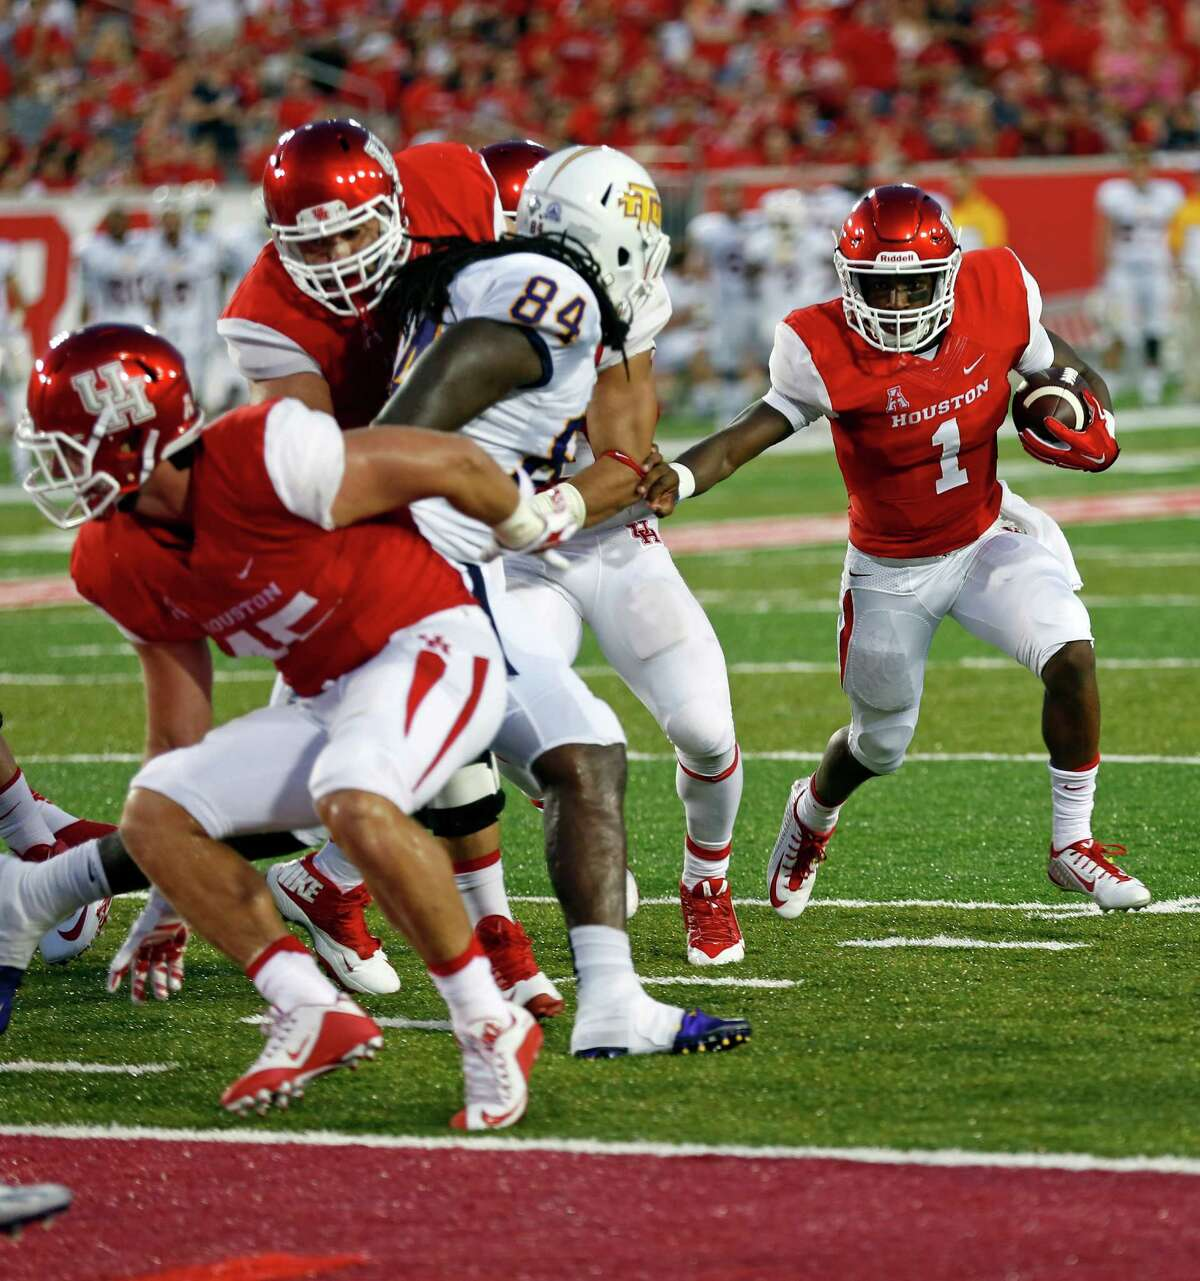 UH vs. Tenn. Tech at TDECU Stadium, UH. 1st QTR. ID: UH #1 Greg Ward Jr. cruises in for the second Cougar TD tongiht. Saturday Sept. 5, 2015 (Craig H. Hartley/For the Chronicle)